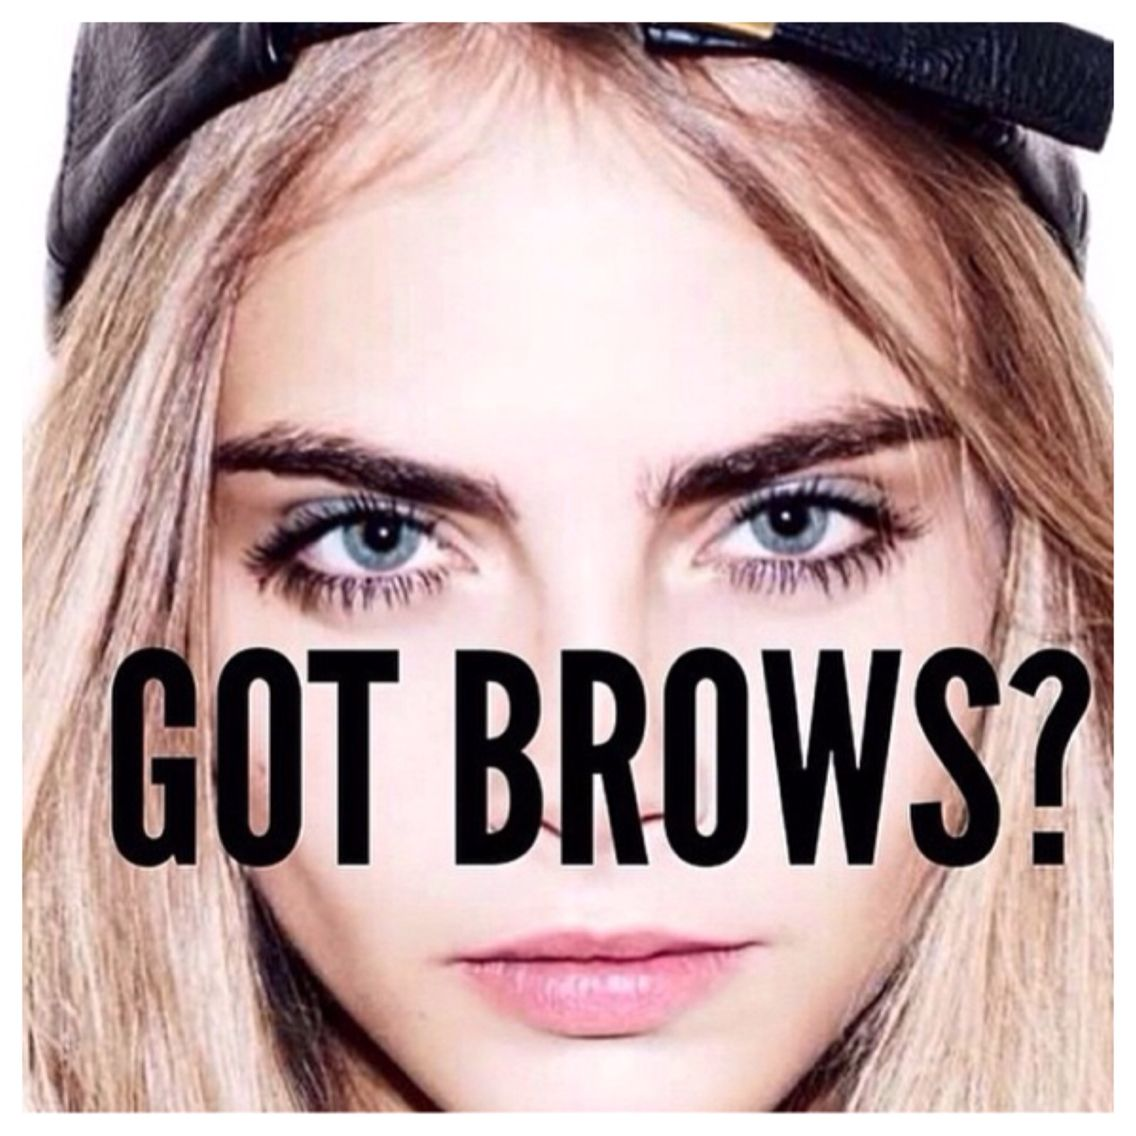 Got Brows? Full & shapely Eyebrows are soooo in right now